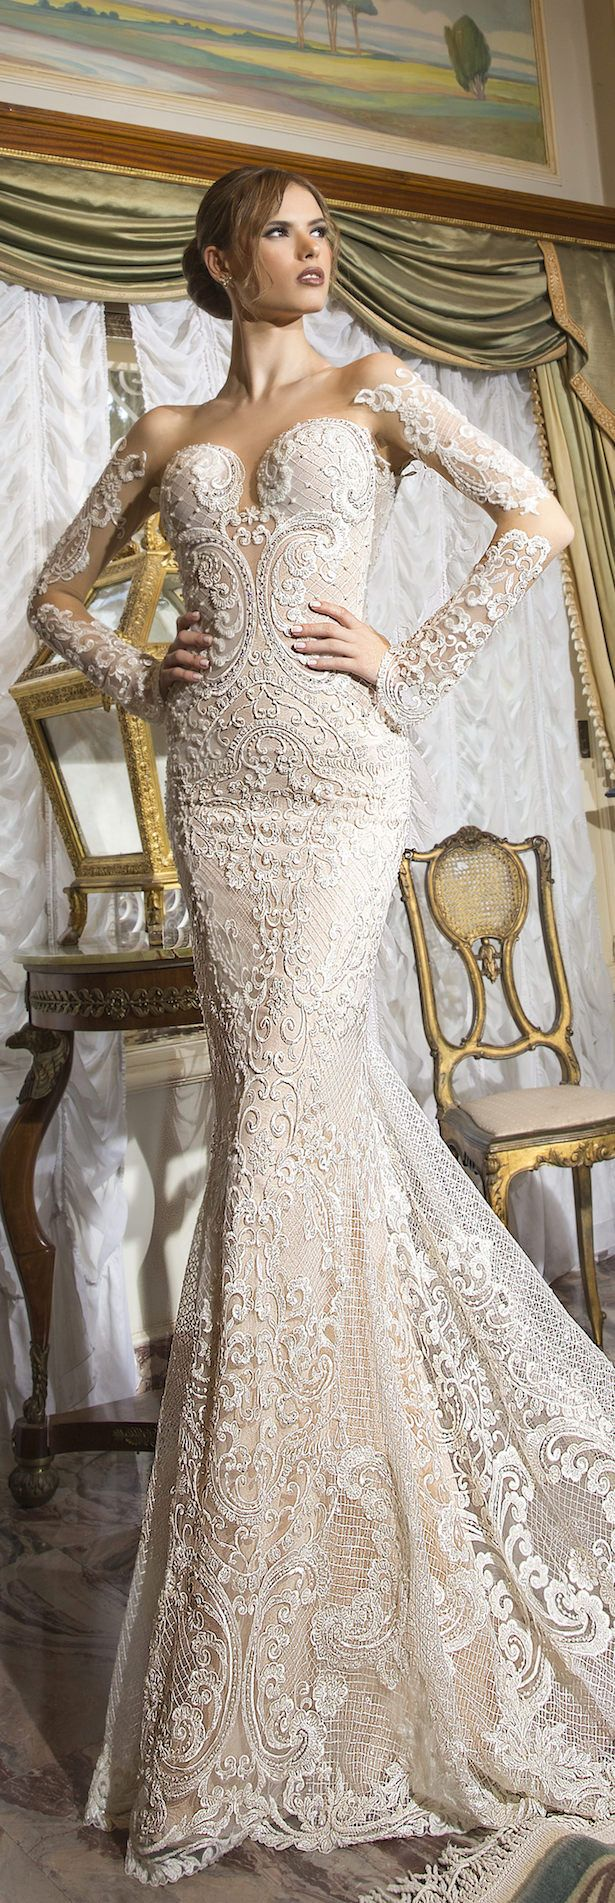 Shabi u israel haute couture bridal collection bridal